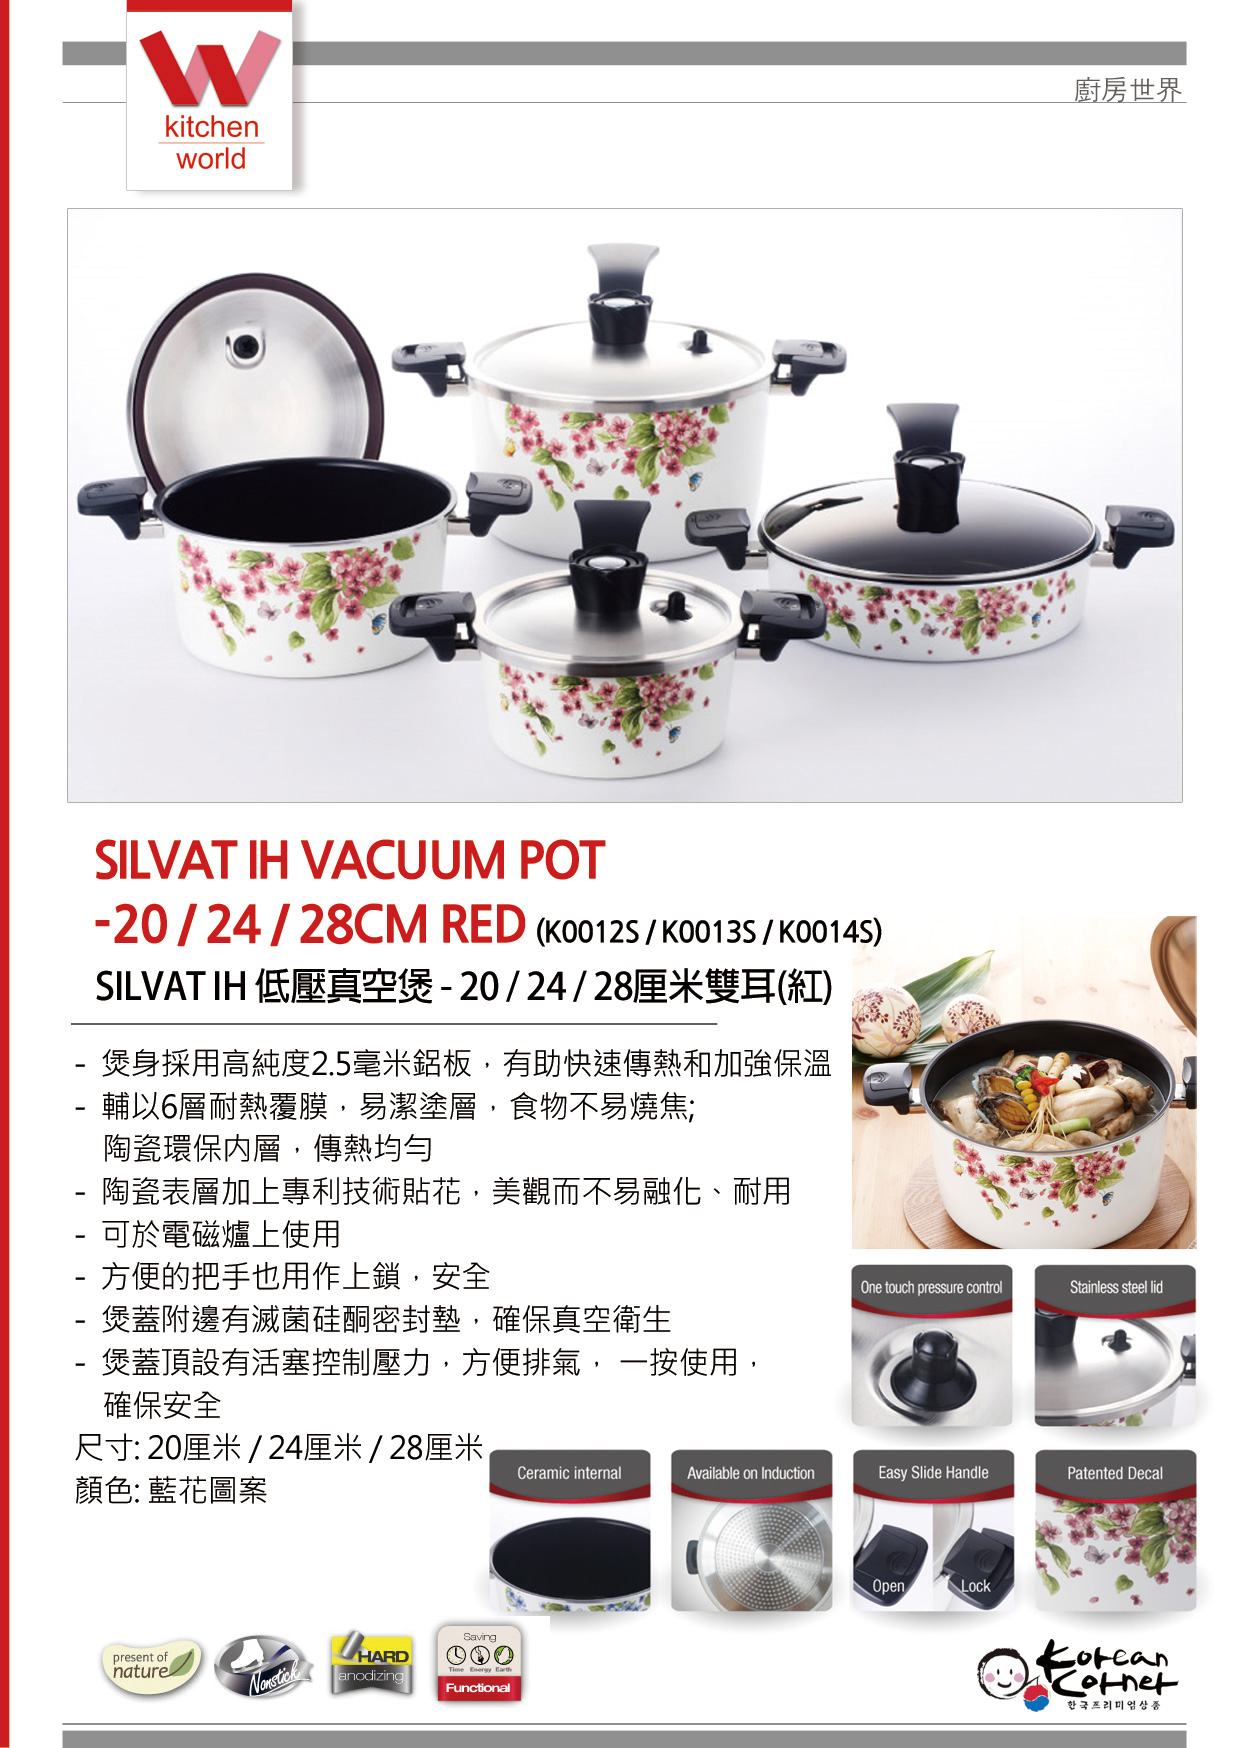 真空煲 - Silvat-IH-Vacuum-Pot - 廚房世界- kitchen world- korean corner